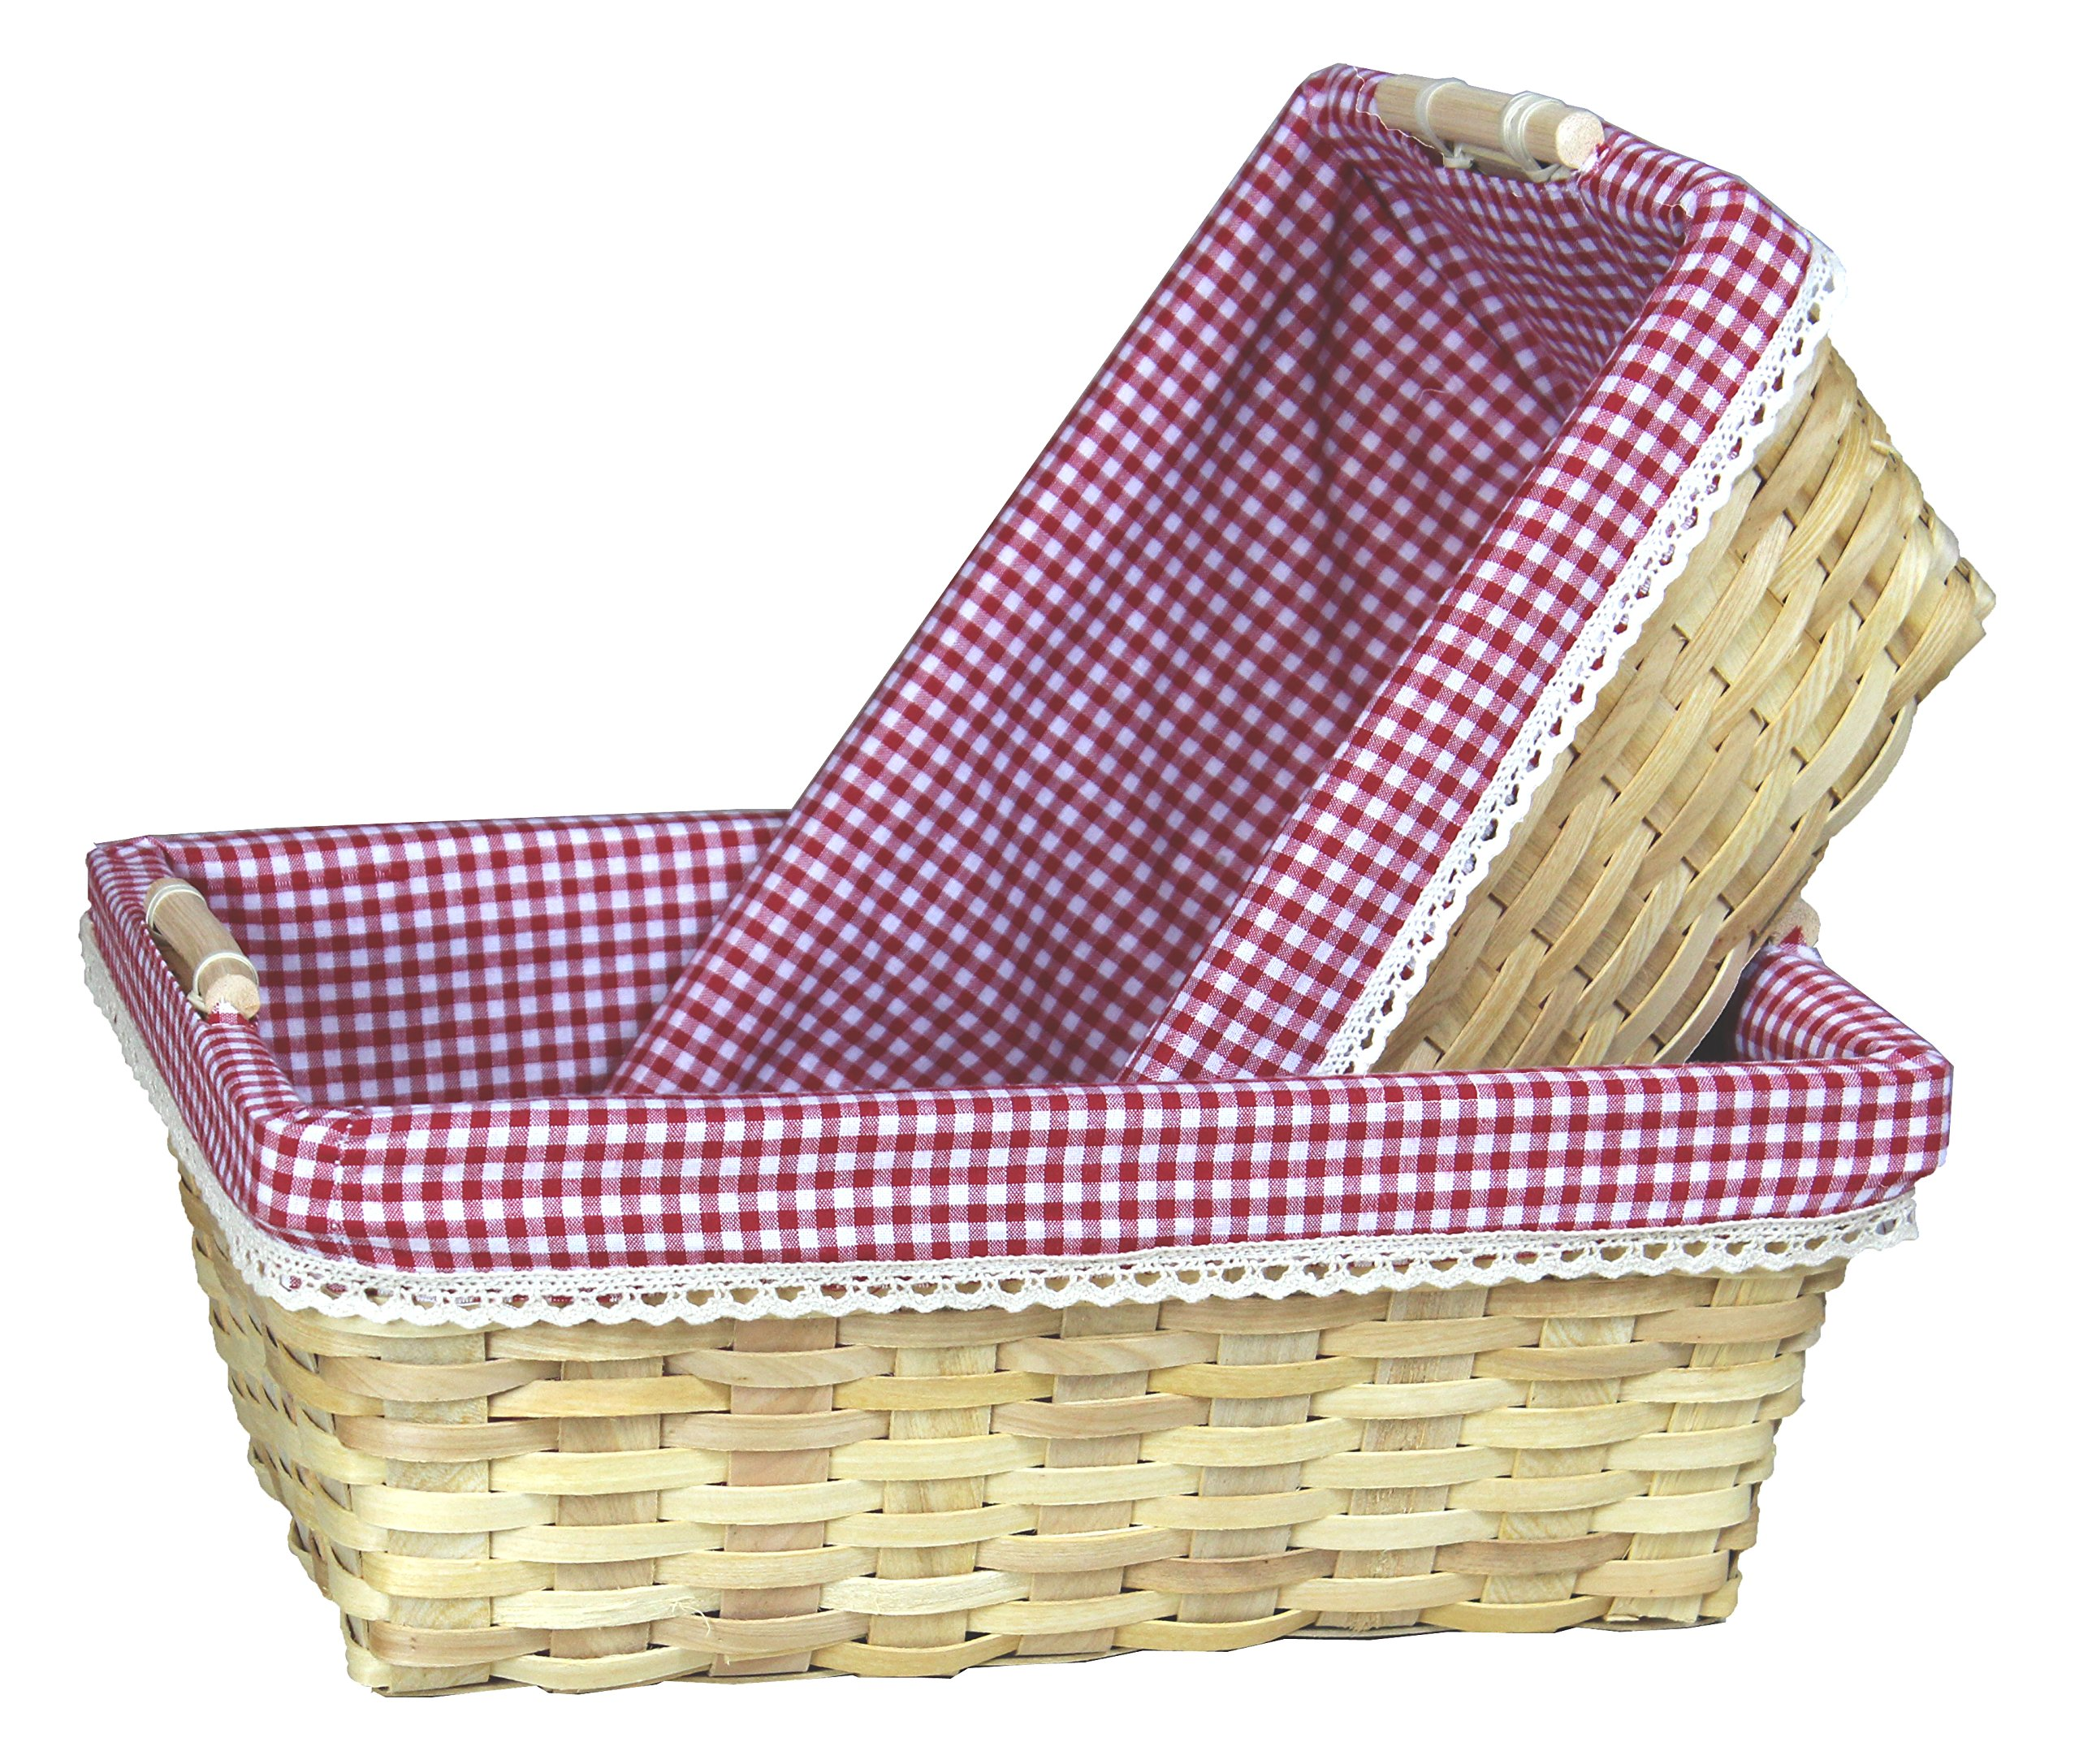 Vintiquewise(TM) Gingham Lined Baskets Set of 2 by Vintiquewise (Image #1)